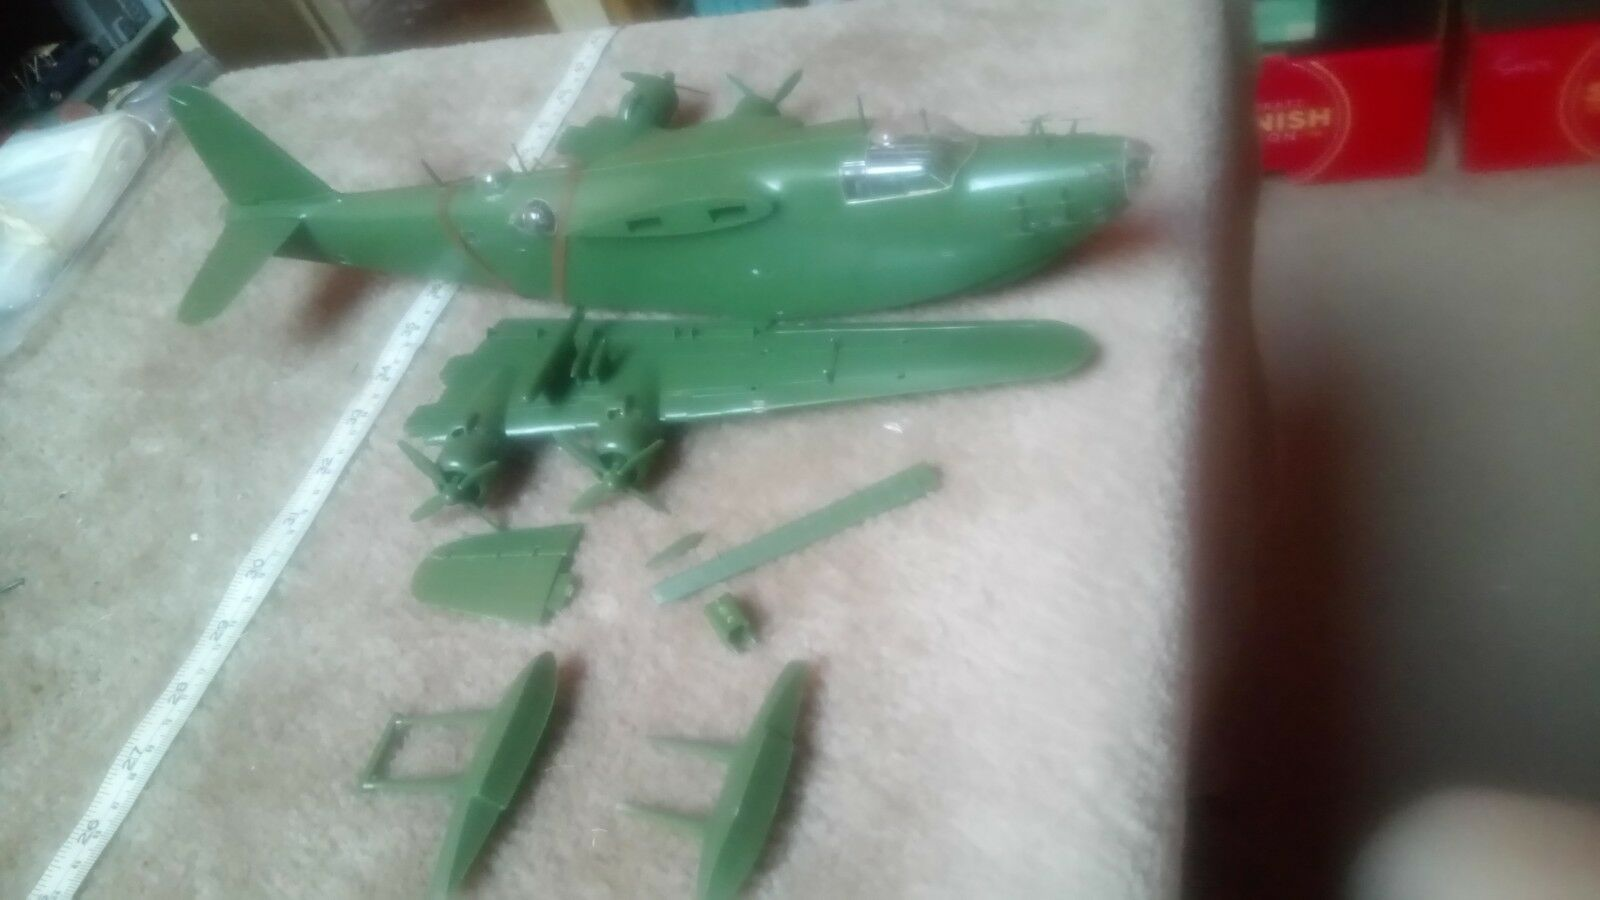 JAPANESE KAWANISHI H8K2 EMILY FLYING BOAT PART BUILT SPARES OR REPAIR 1 72 SCALE